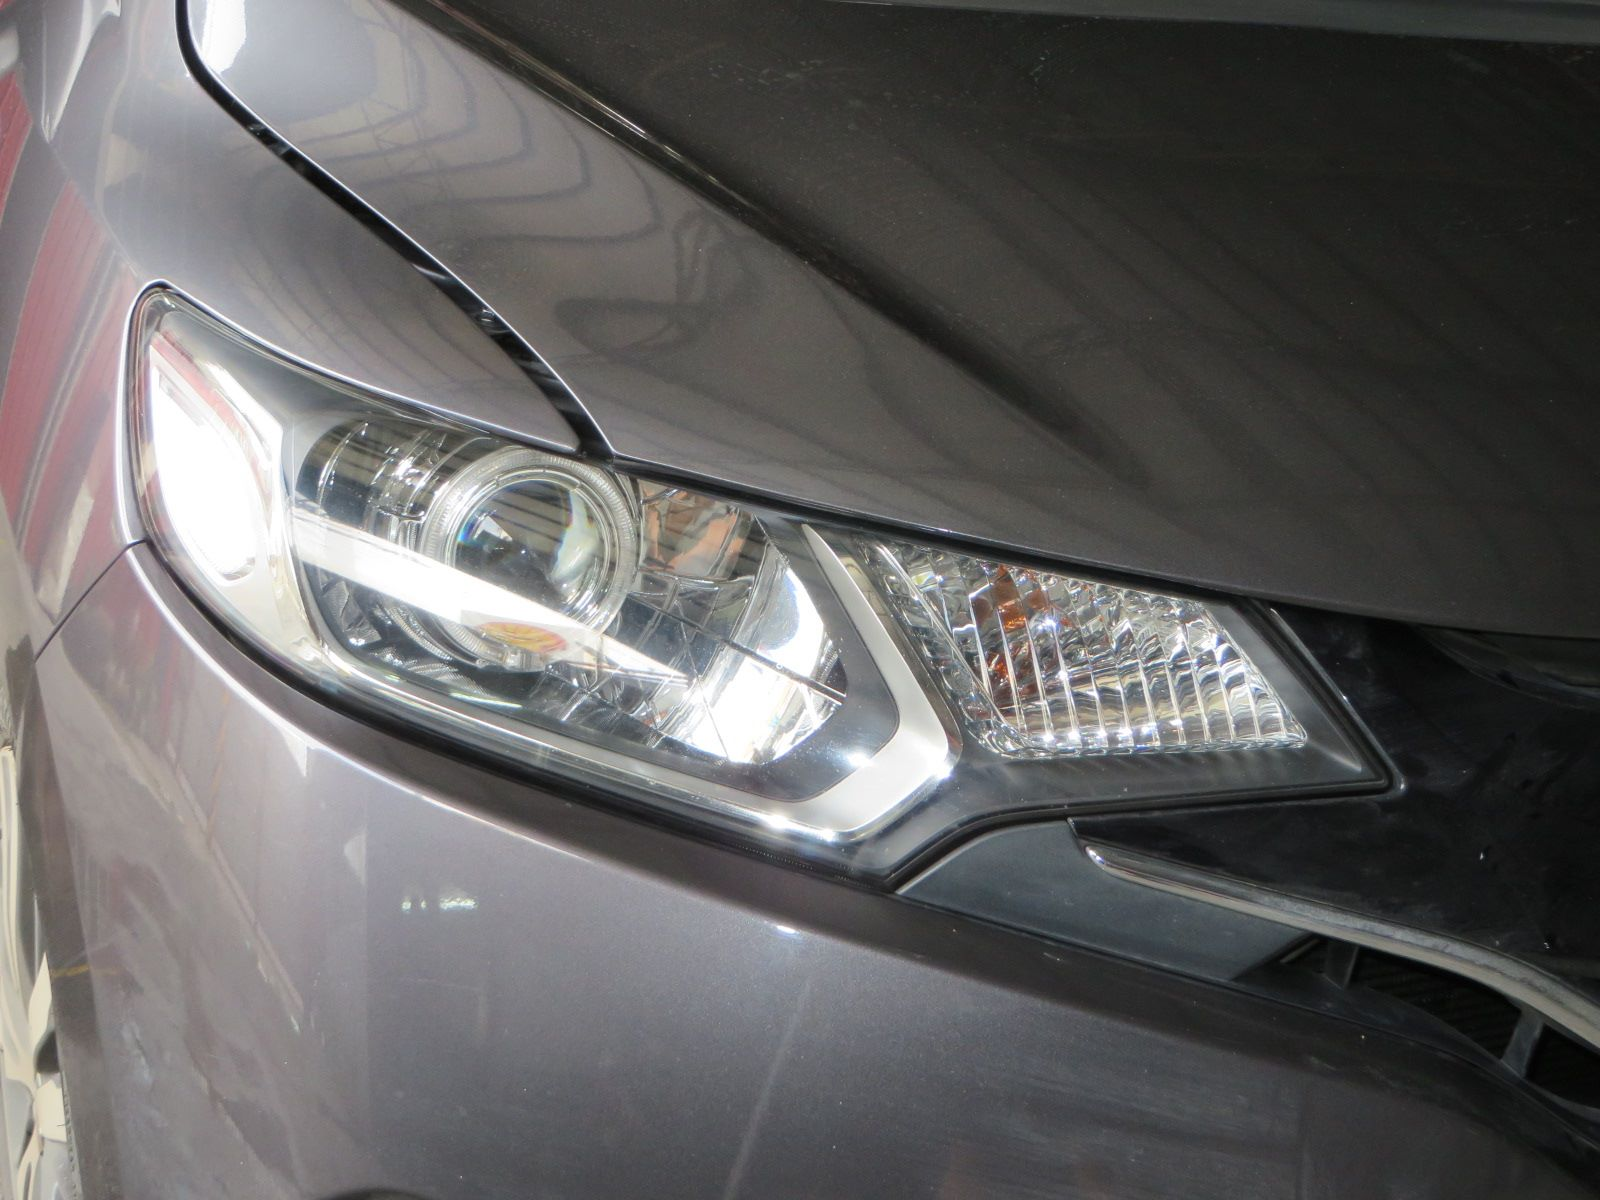 This GK gets our performance setup with 3″ bixenon projectors running 35w  and all weather bulbs.@ www.theretrofitshop.com